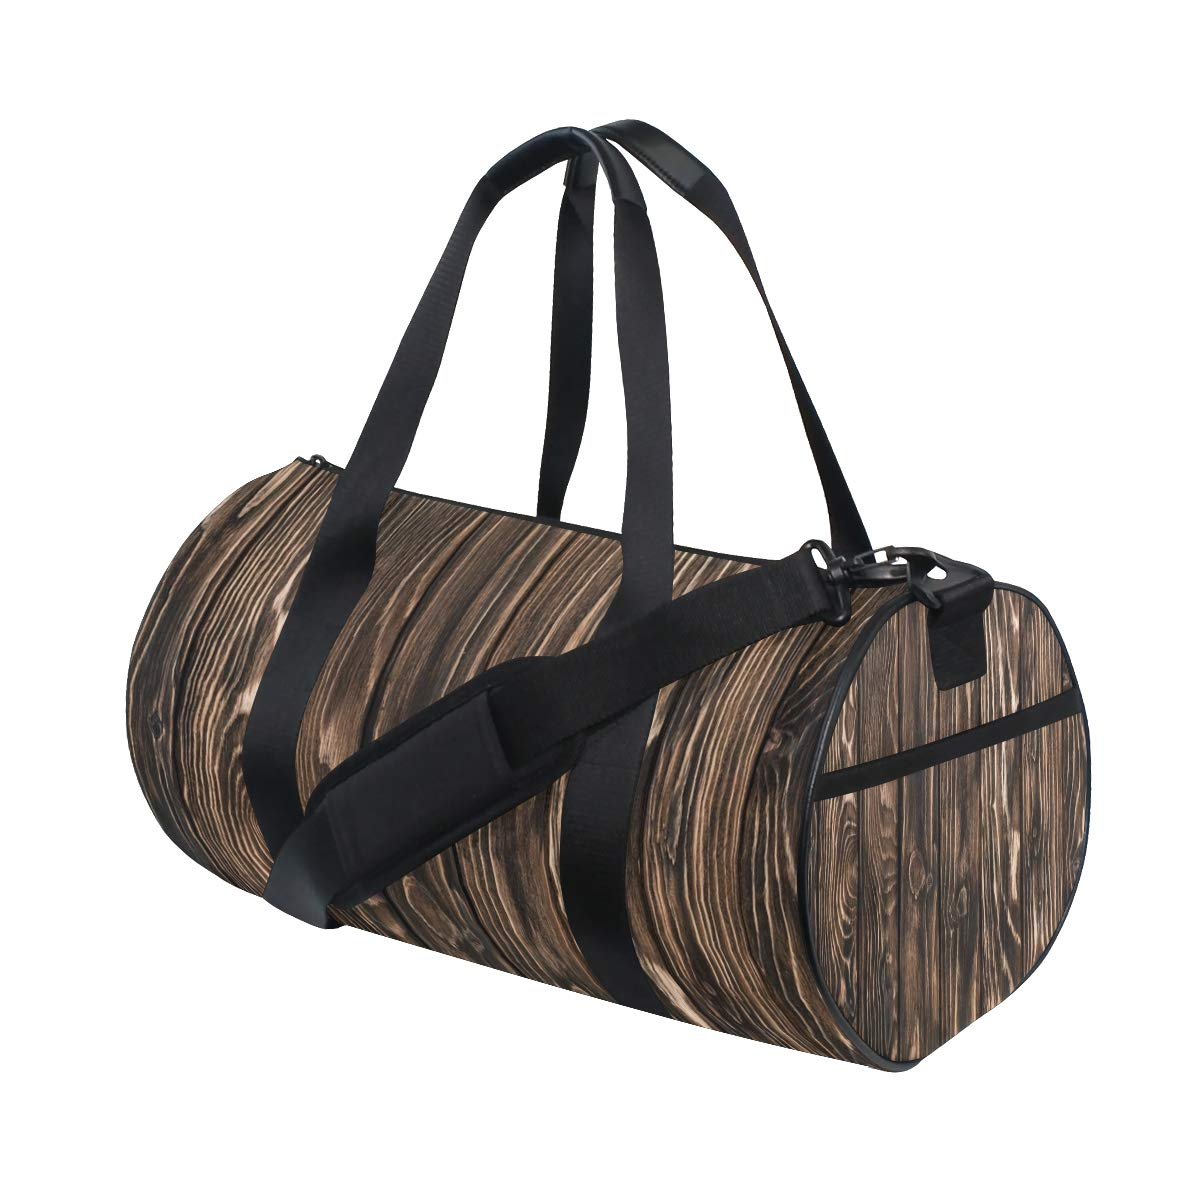 Wood Yoga Sports Gym Duffle Bags Tote Sling Travel Bag Patterned Canvas with Pocket and Zipper For Men Women Bag